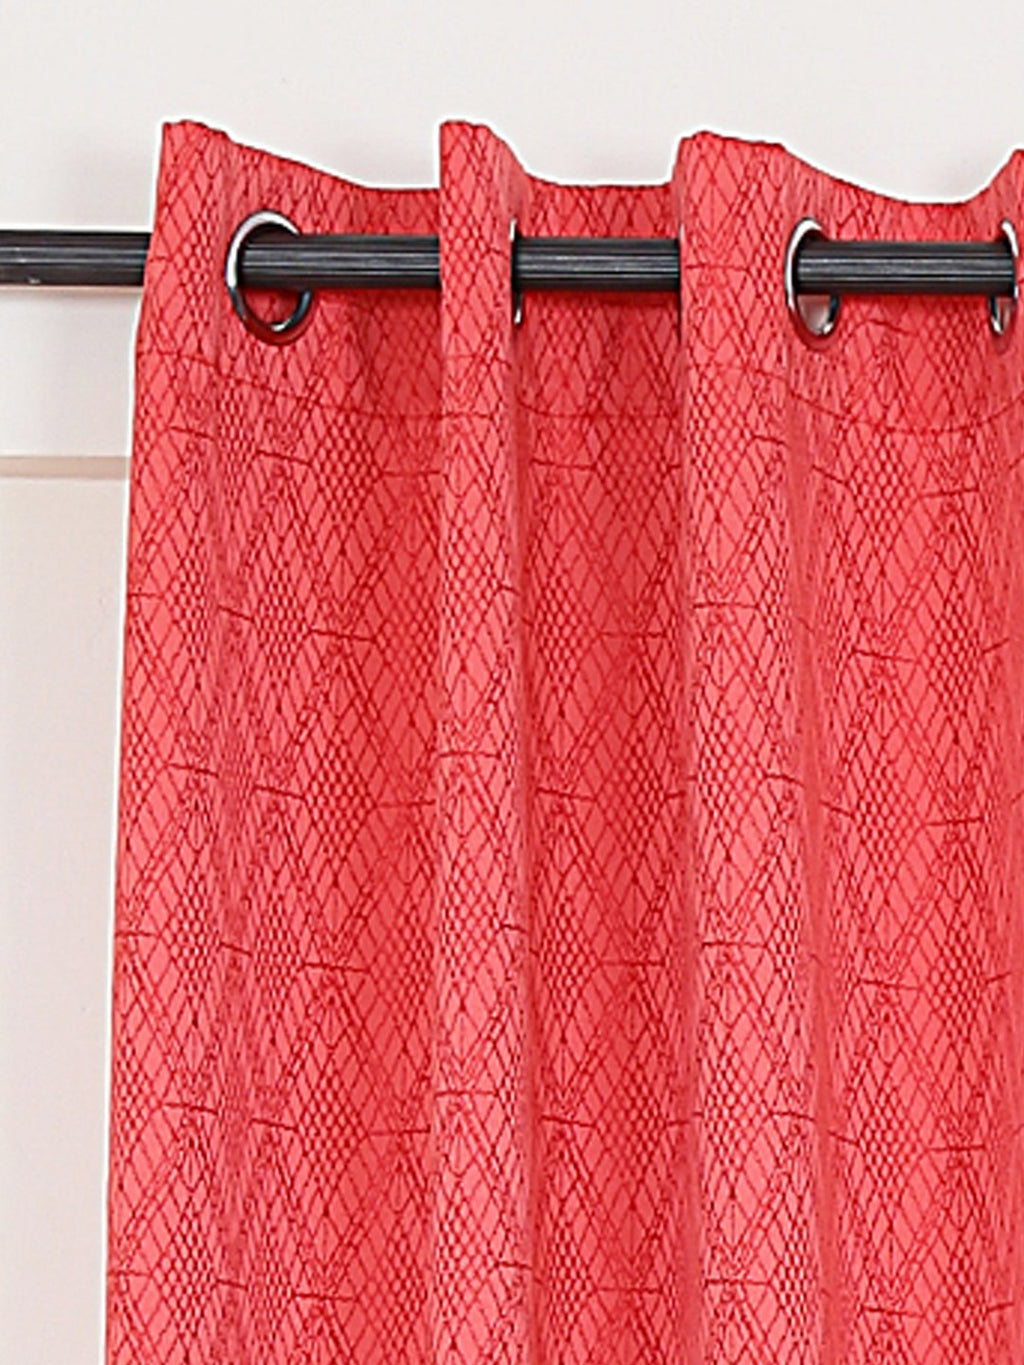 RANGRAGE 1 Piece Eyelet Polyester Window Curtain, 5ft, Peach